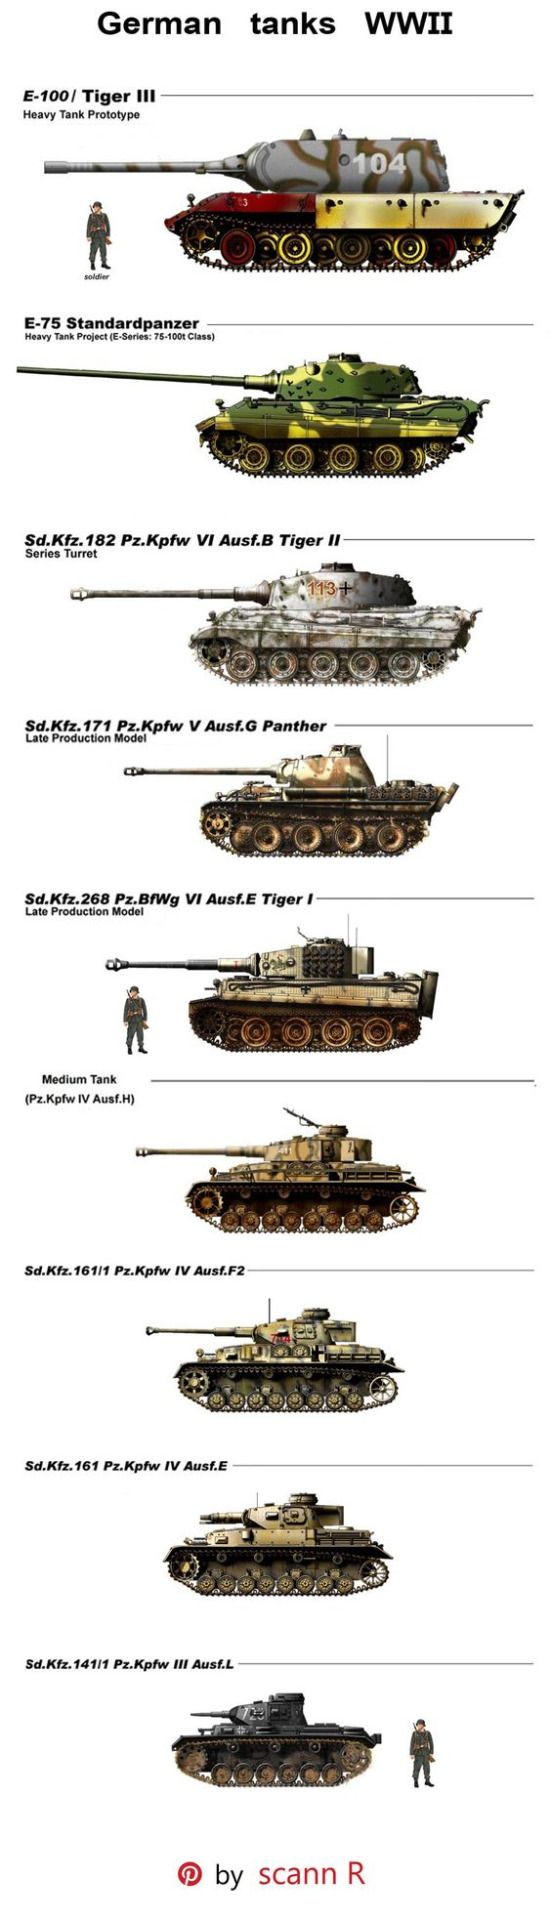 best ideas about world war war history and history german tanks of world war ii the top 2 heavy tank was never made